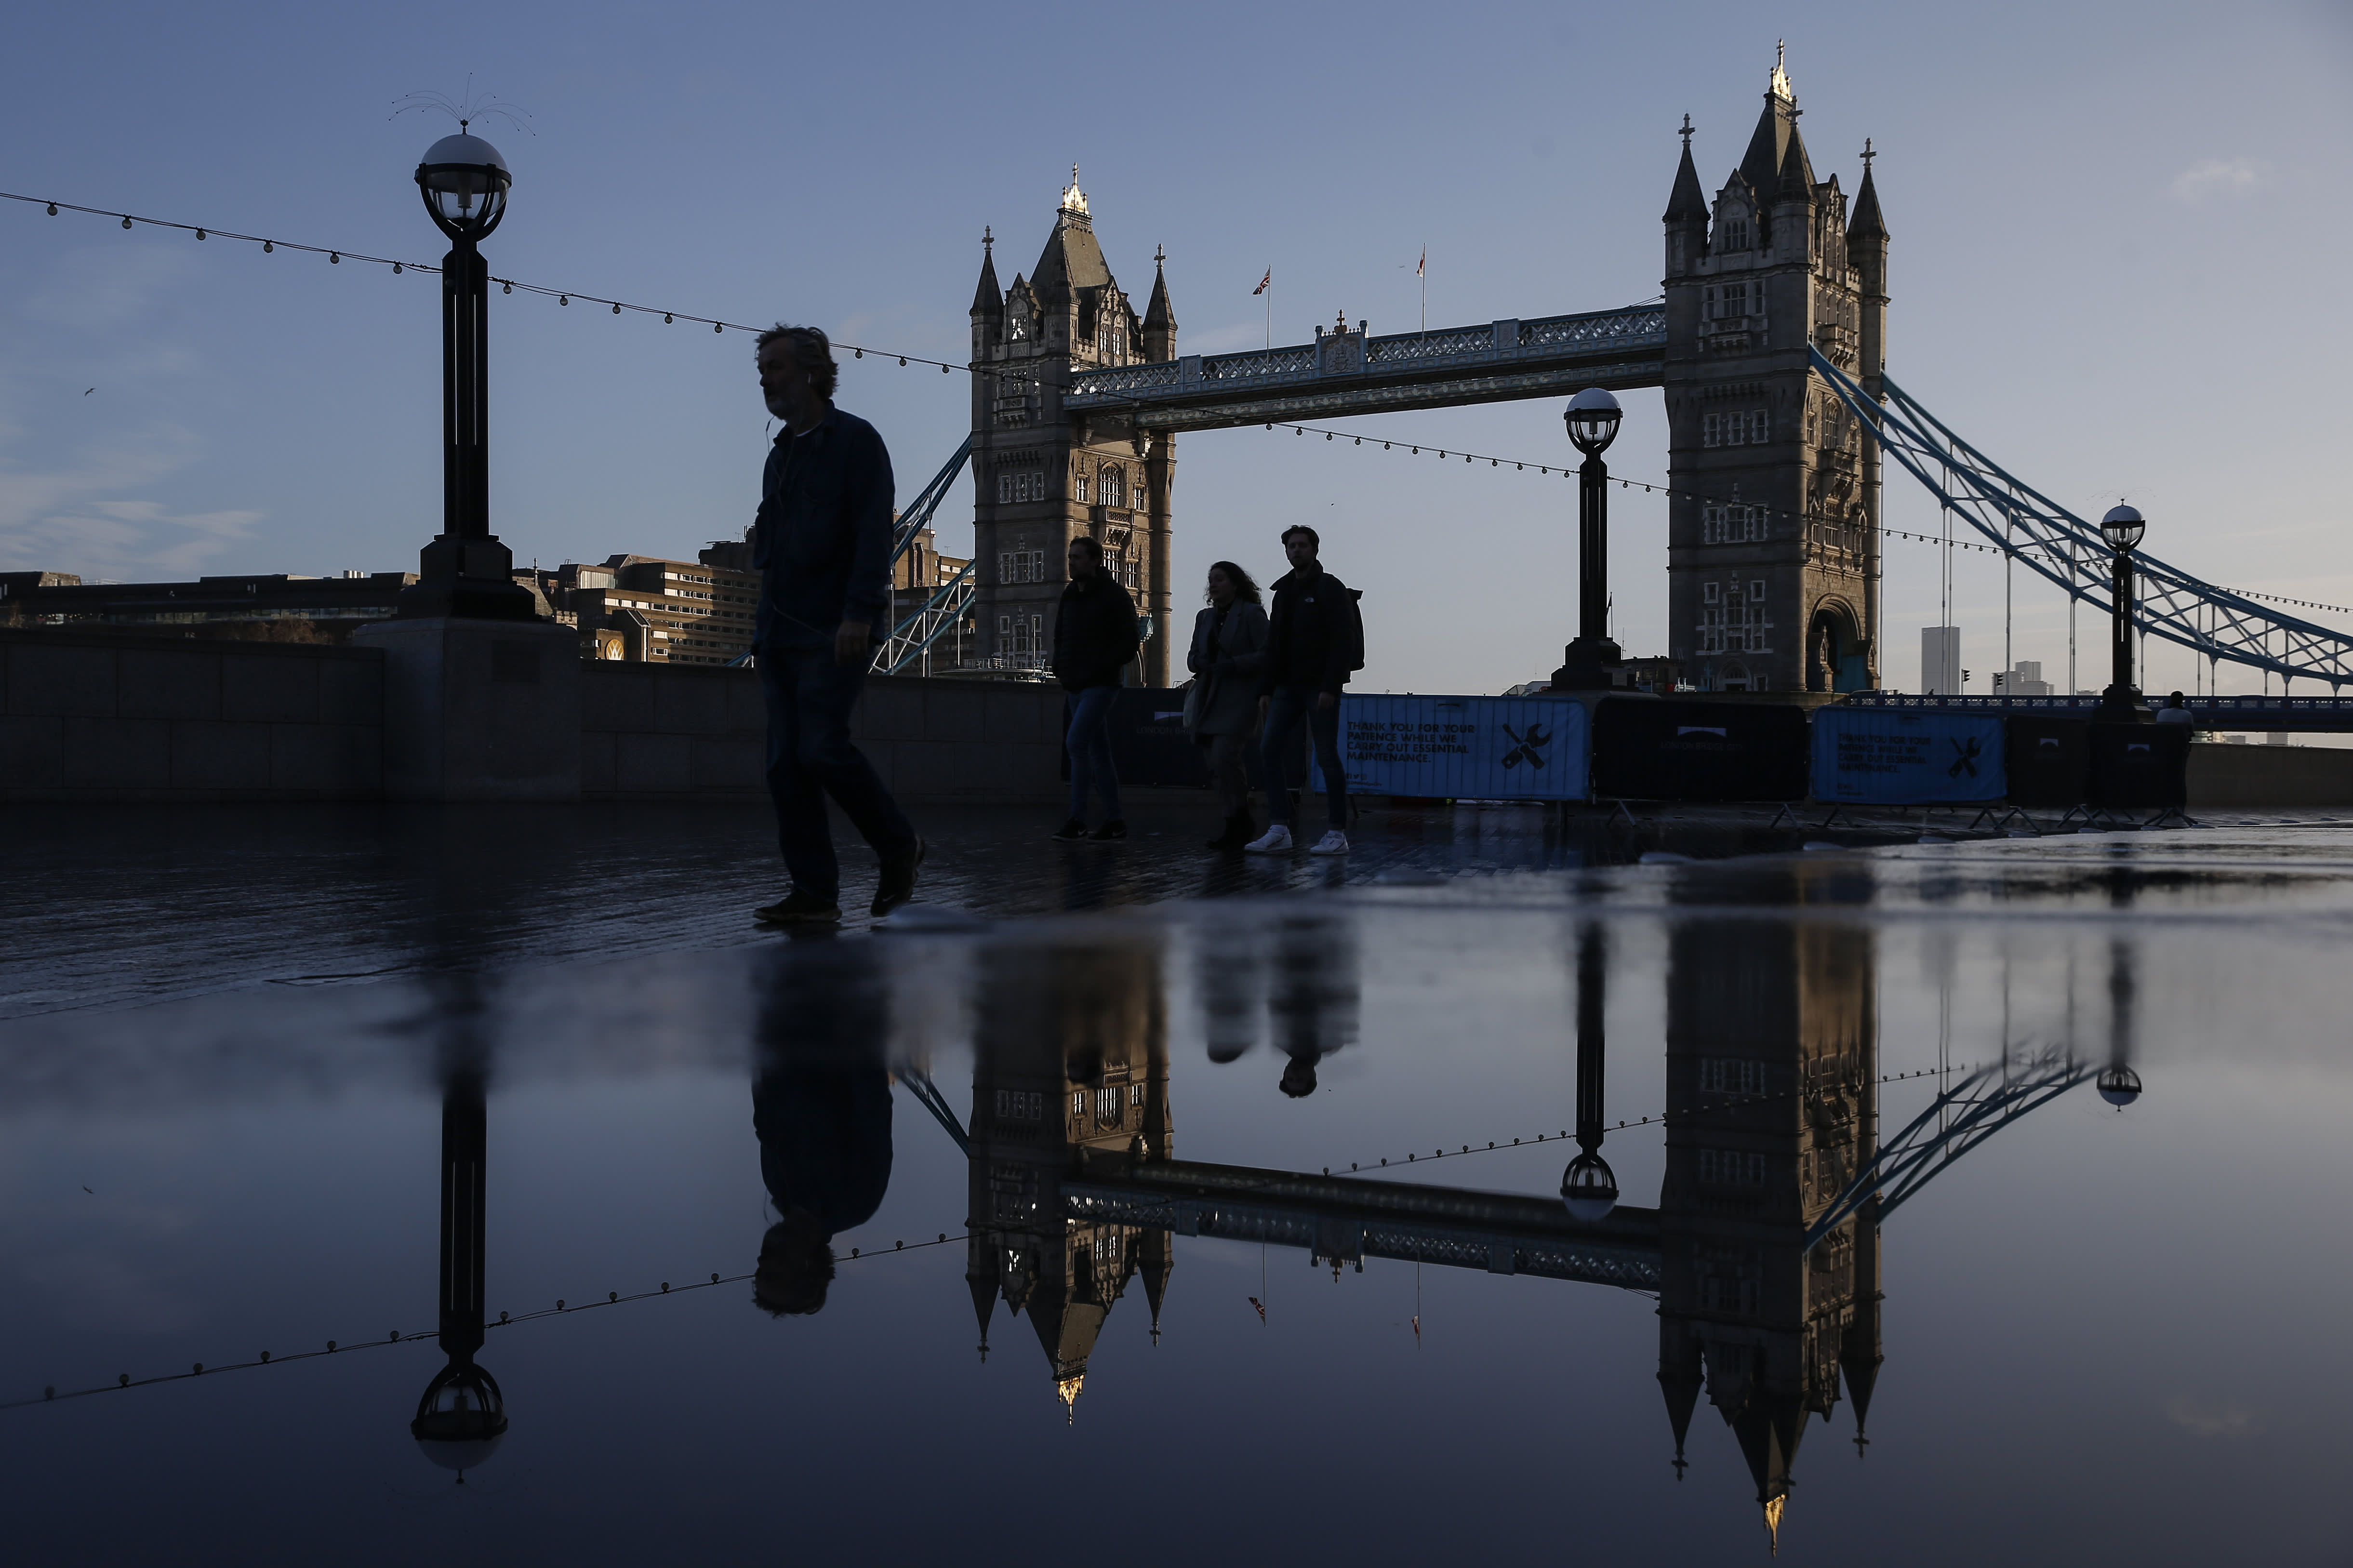 UK economy contracted by 1.5% in the first quarter as lockdowns weighed